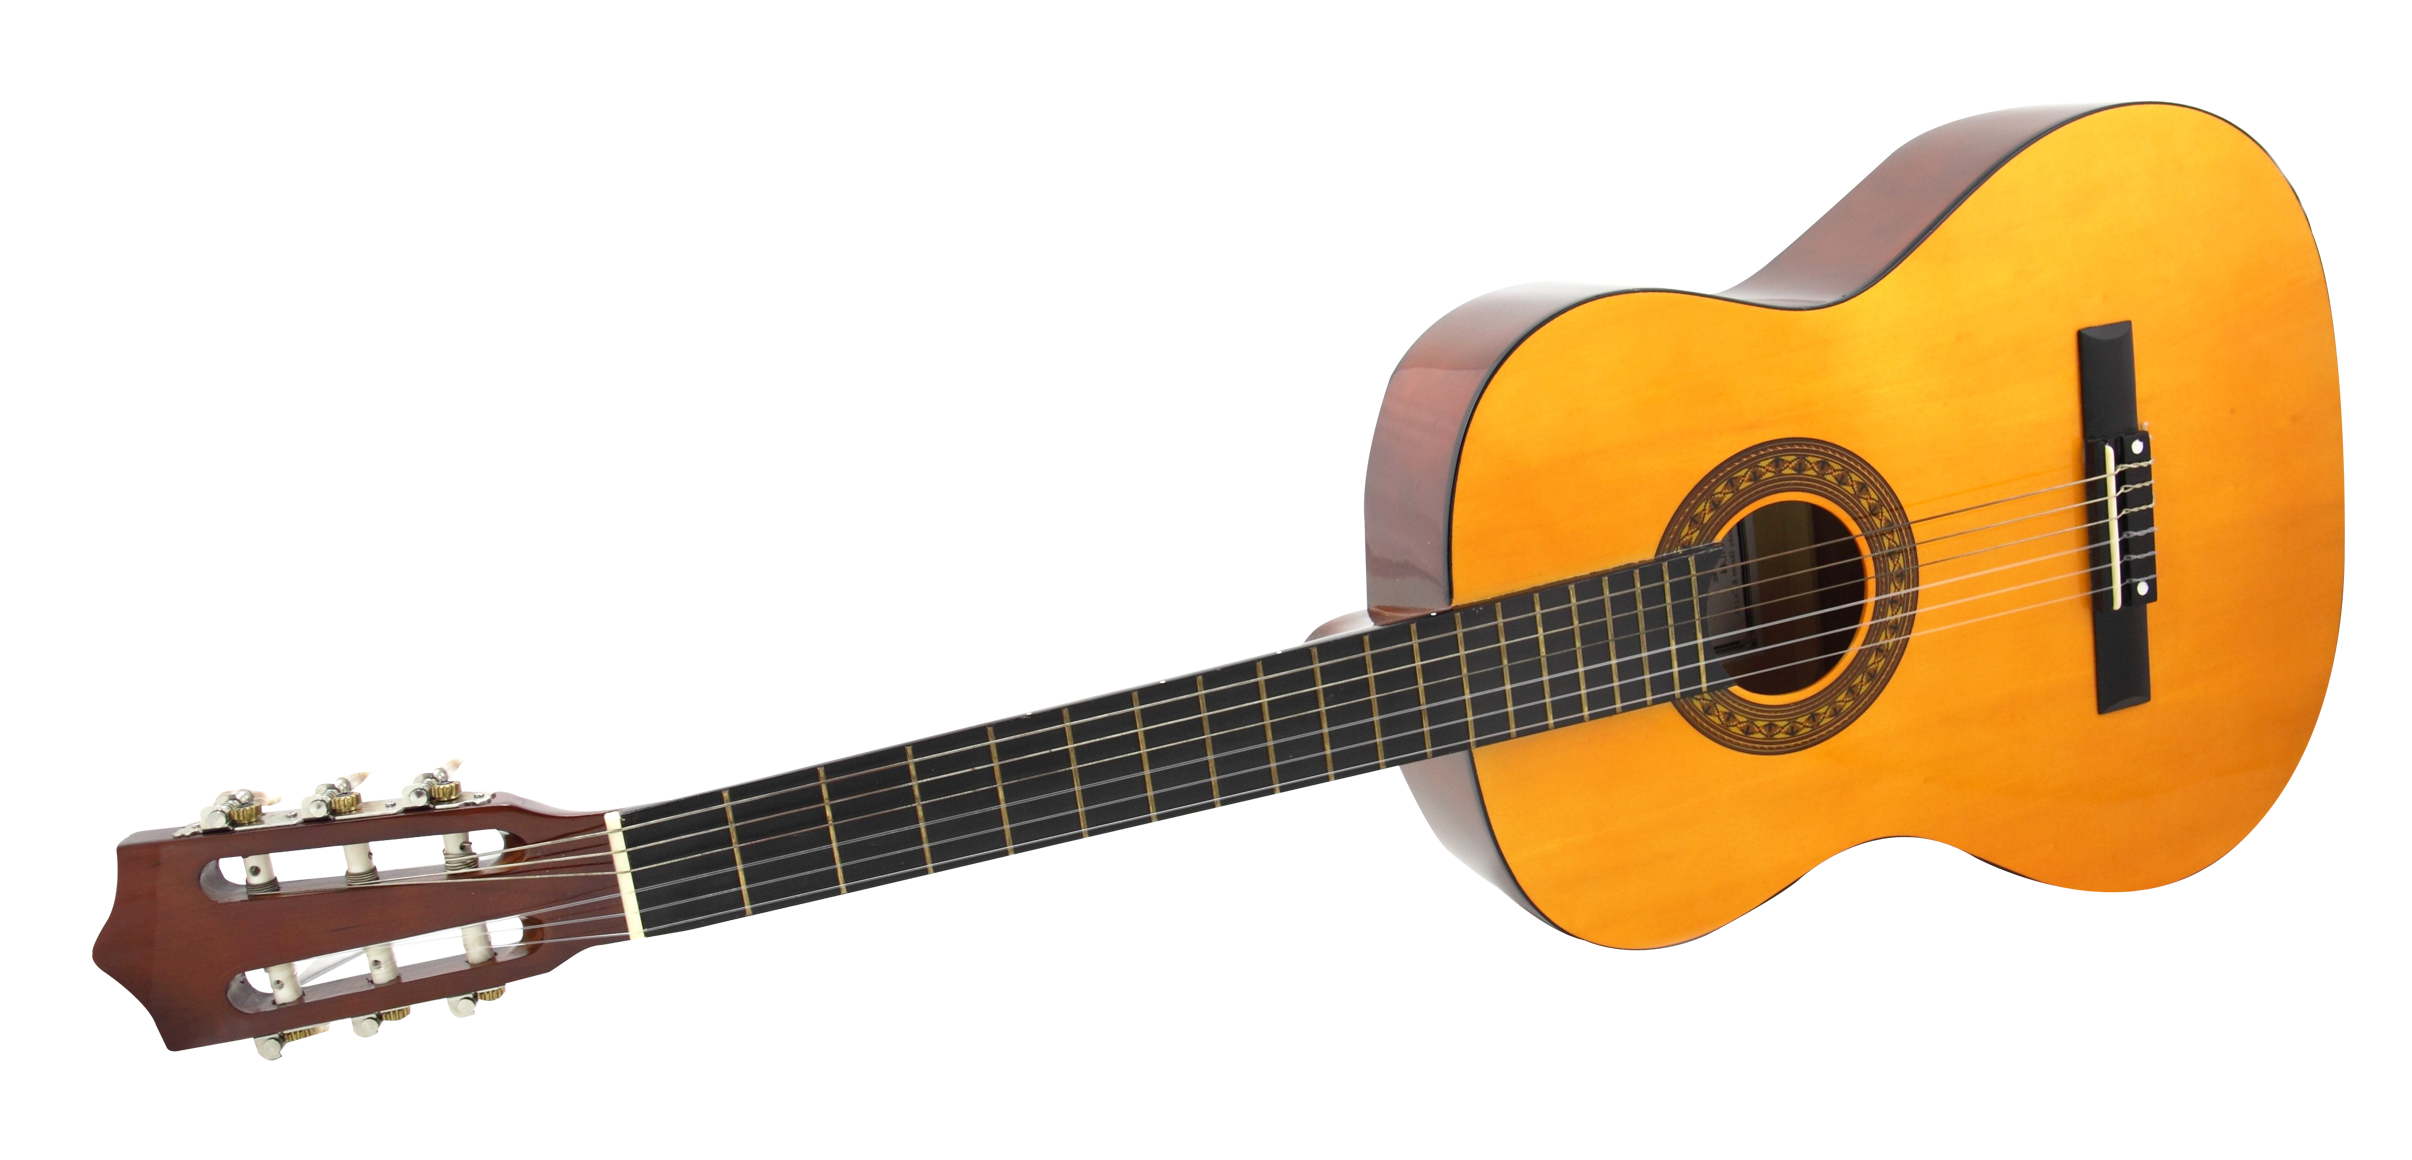 guitar png transparent image pngpix #12826